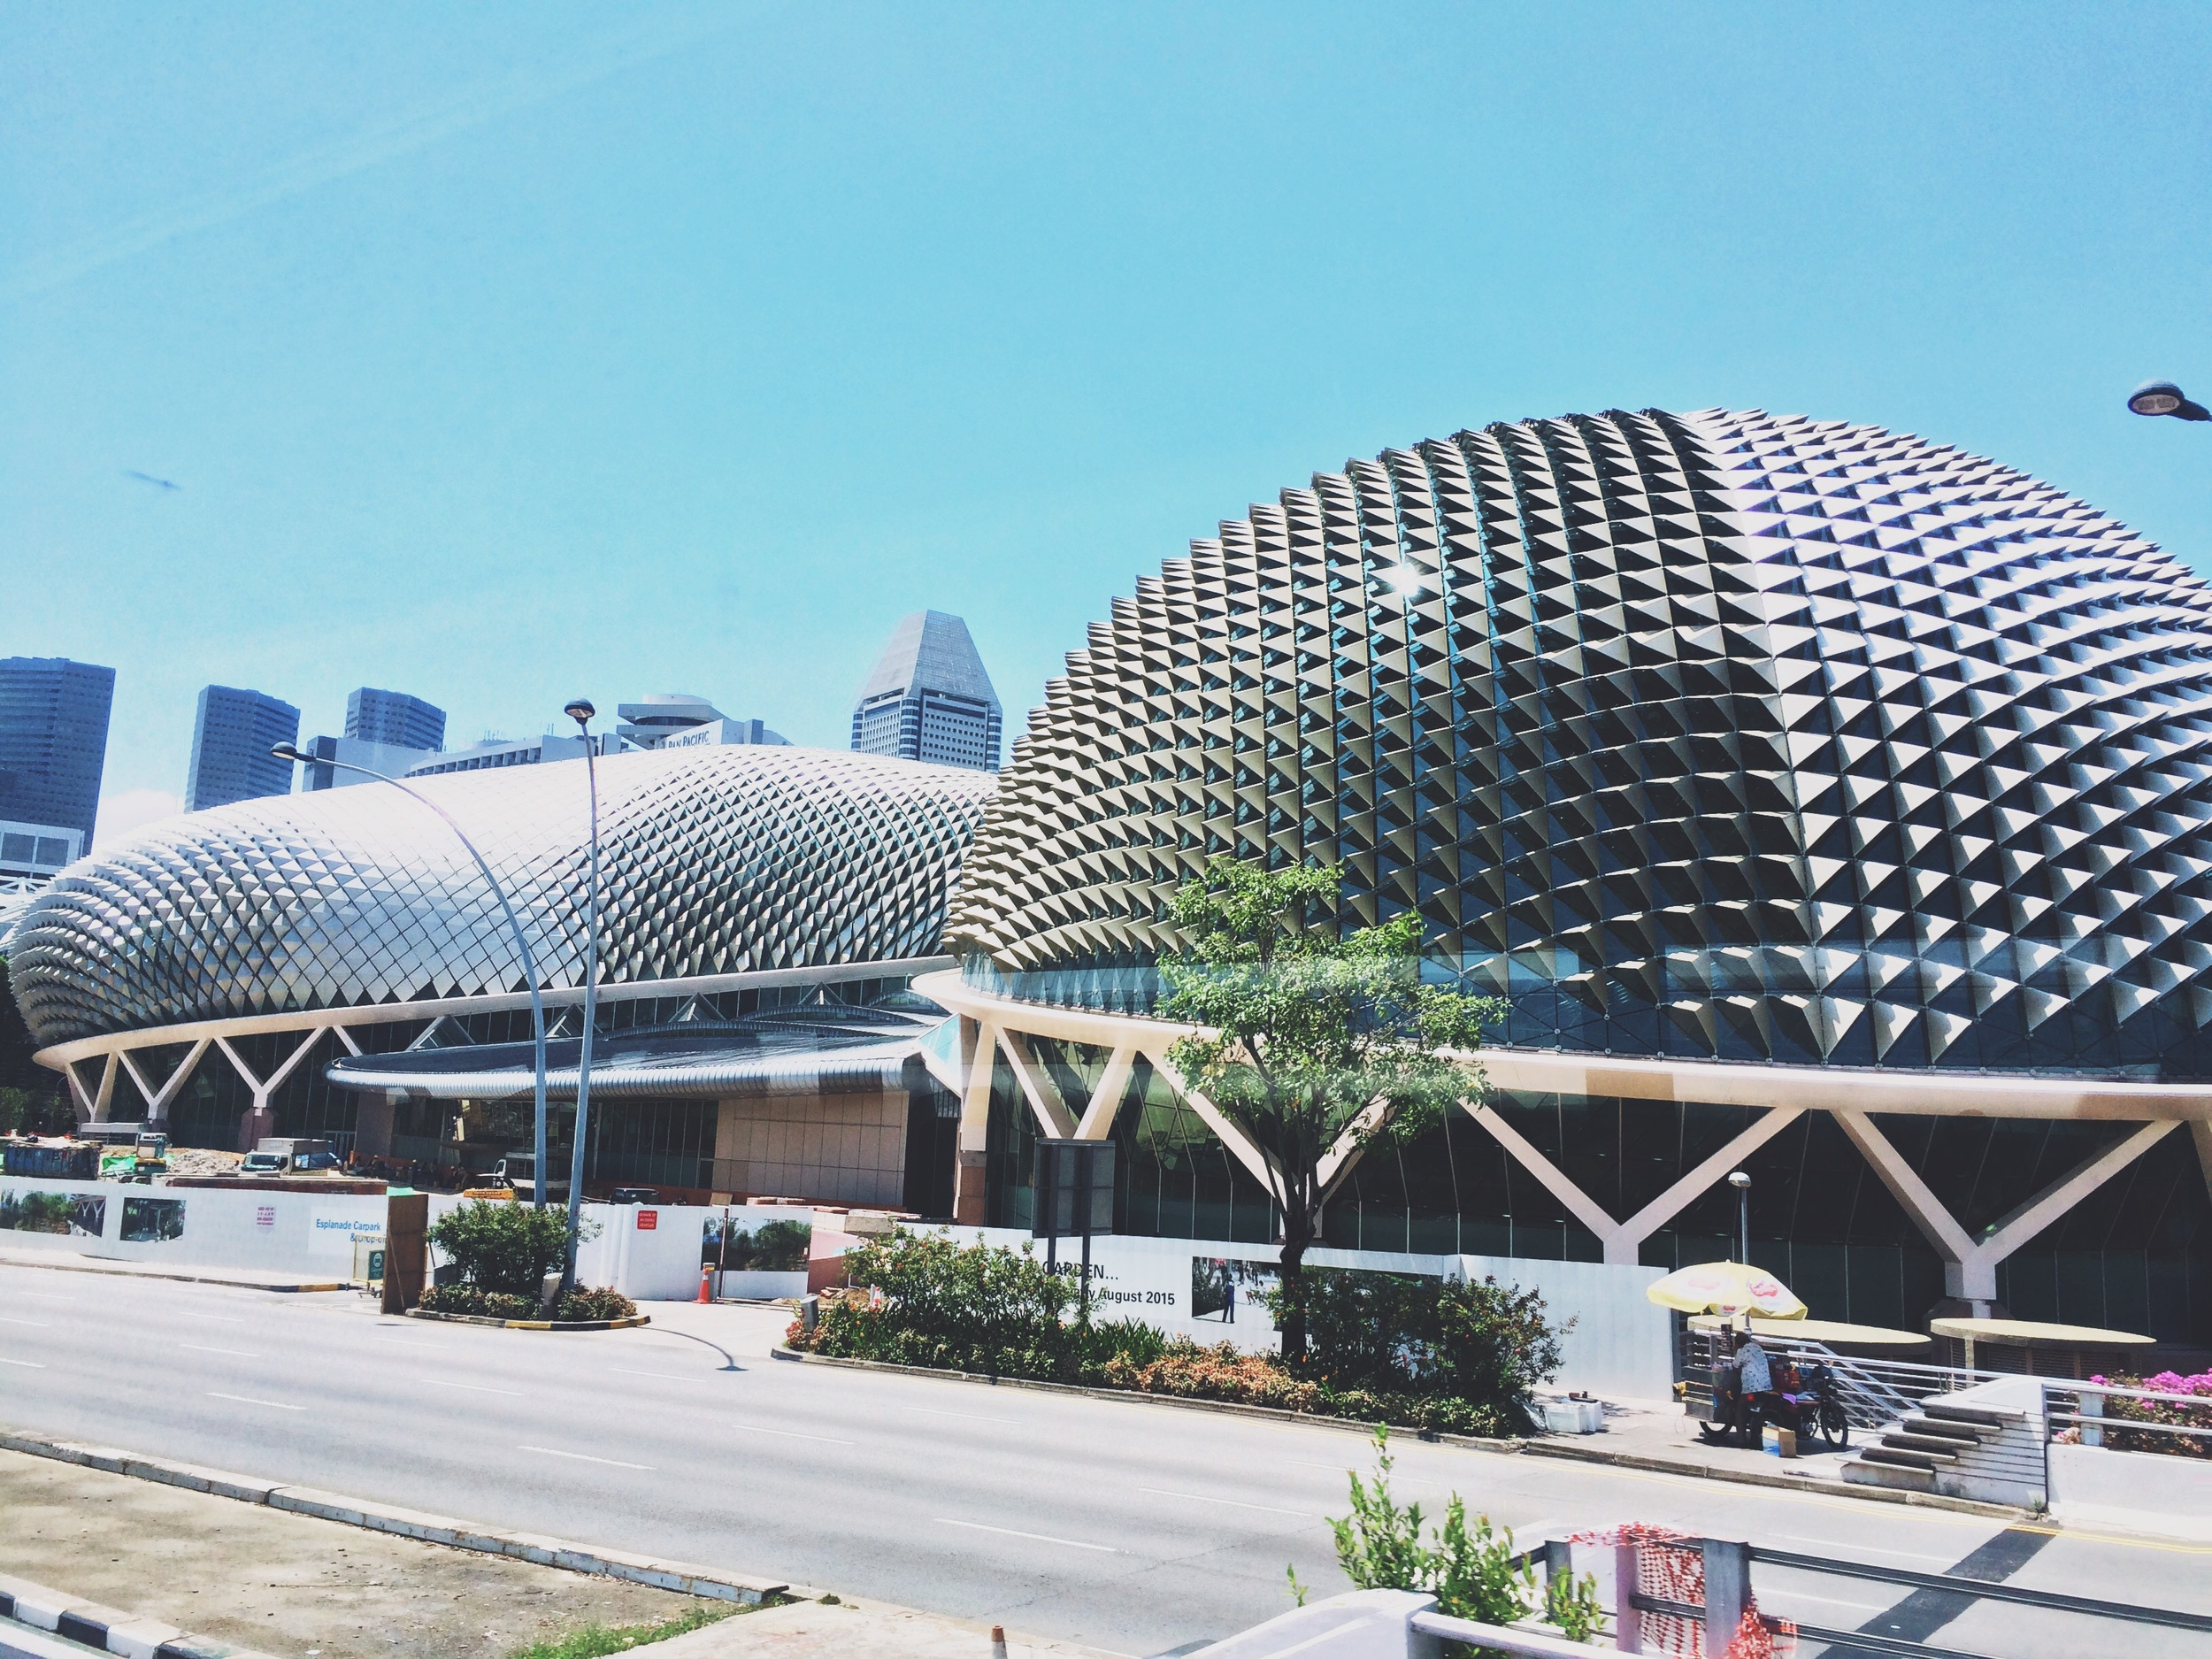 Esplanade performing arts centre